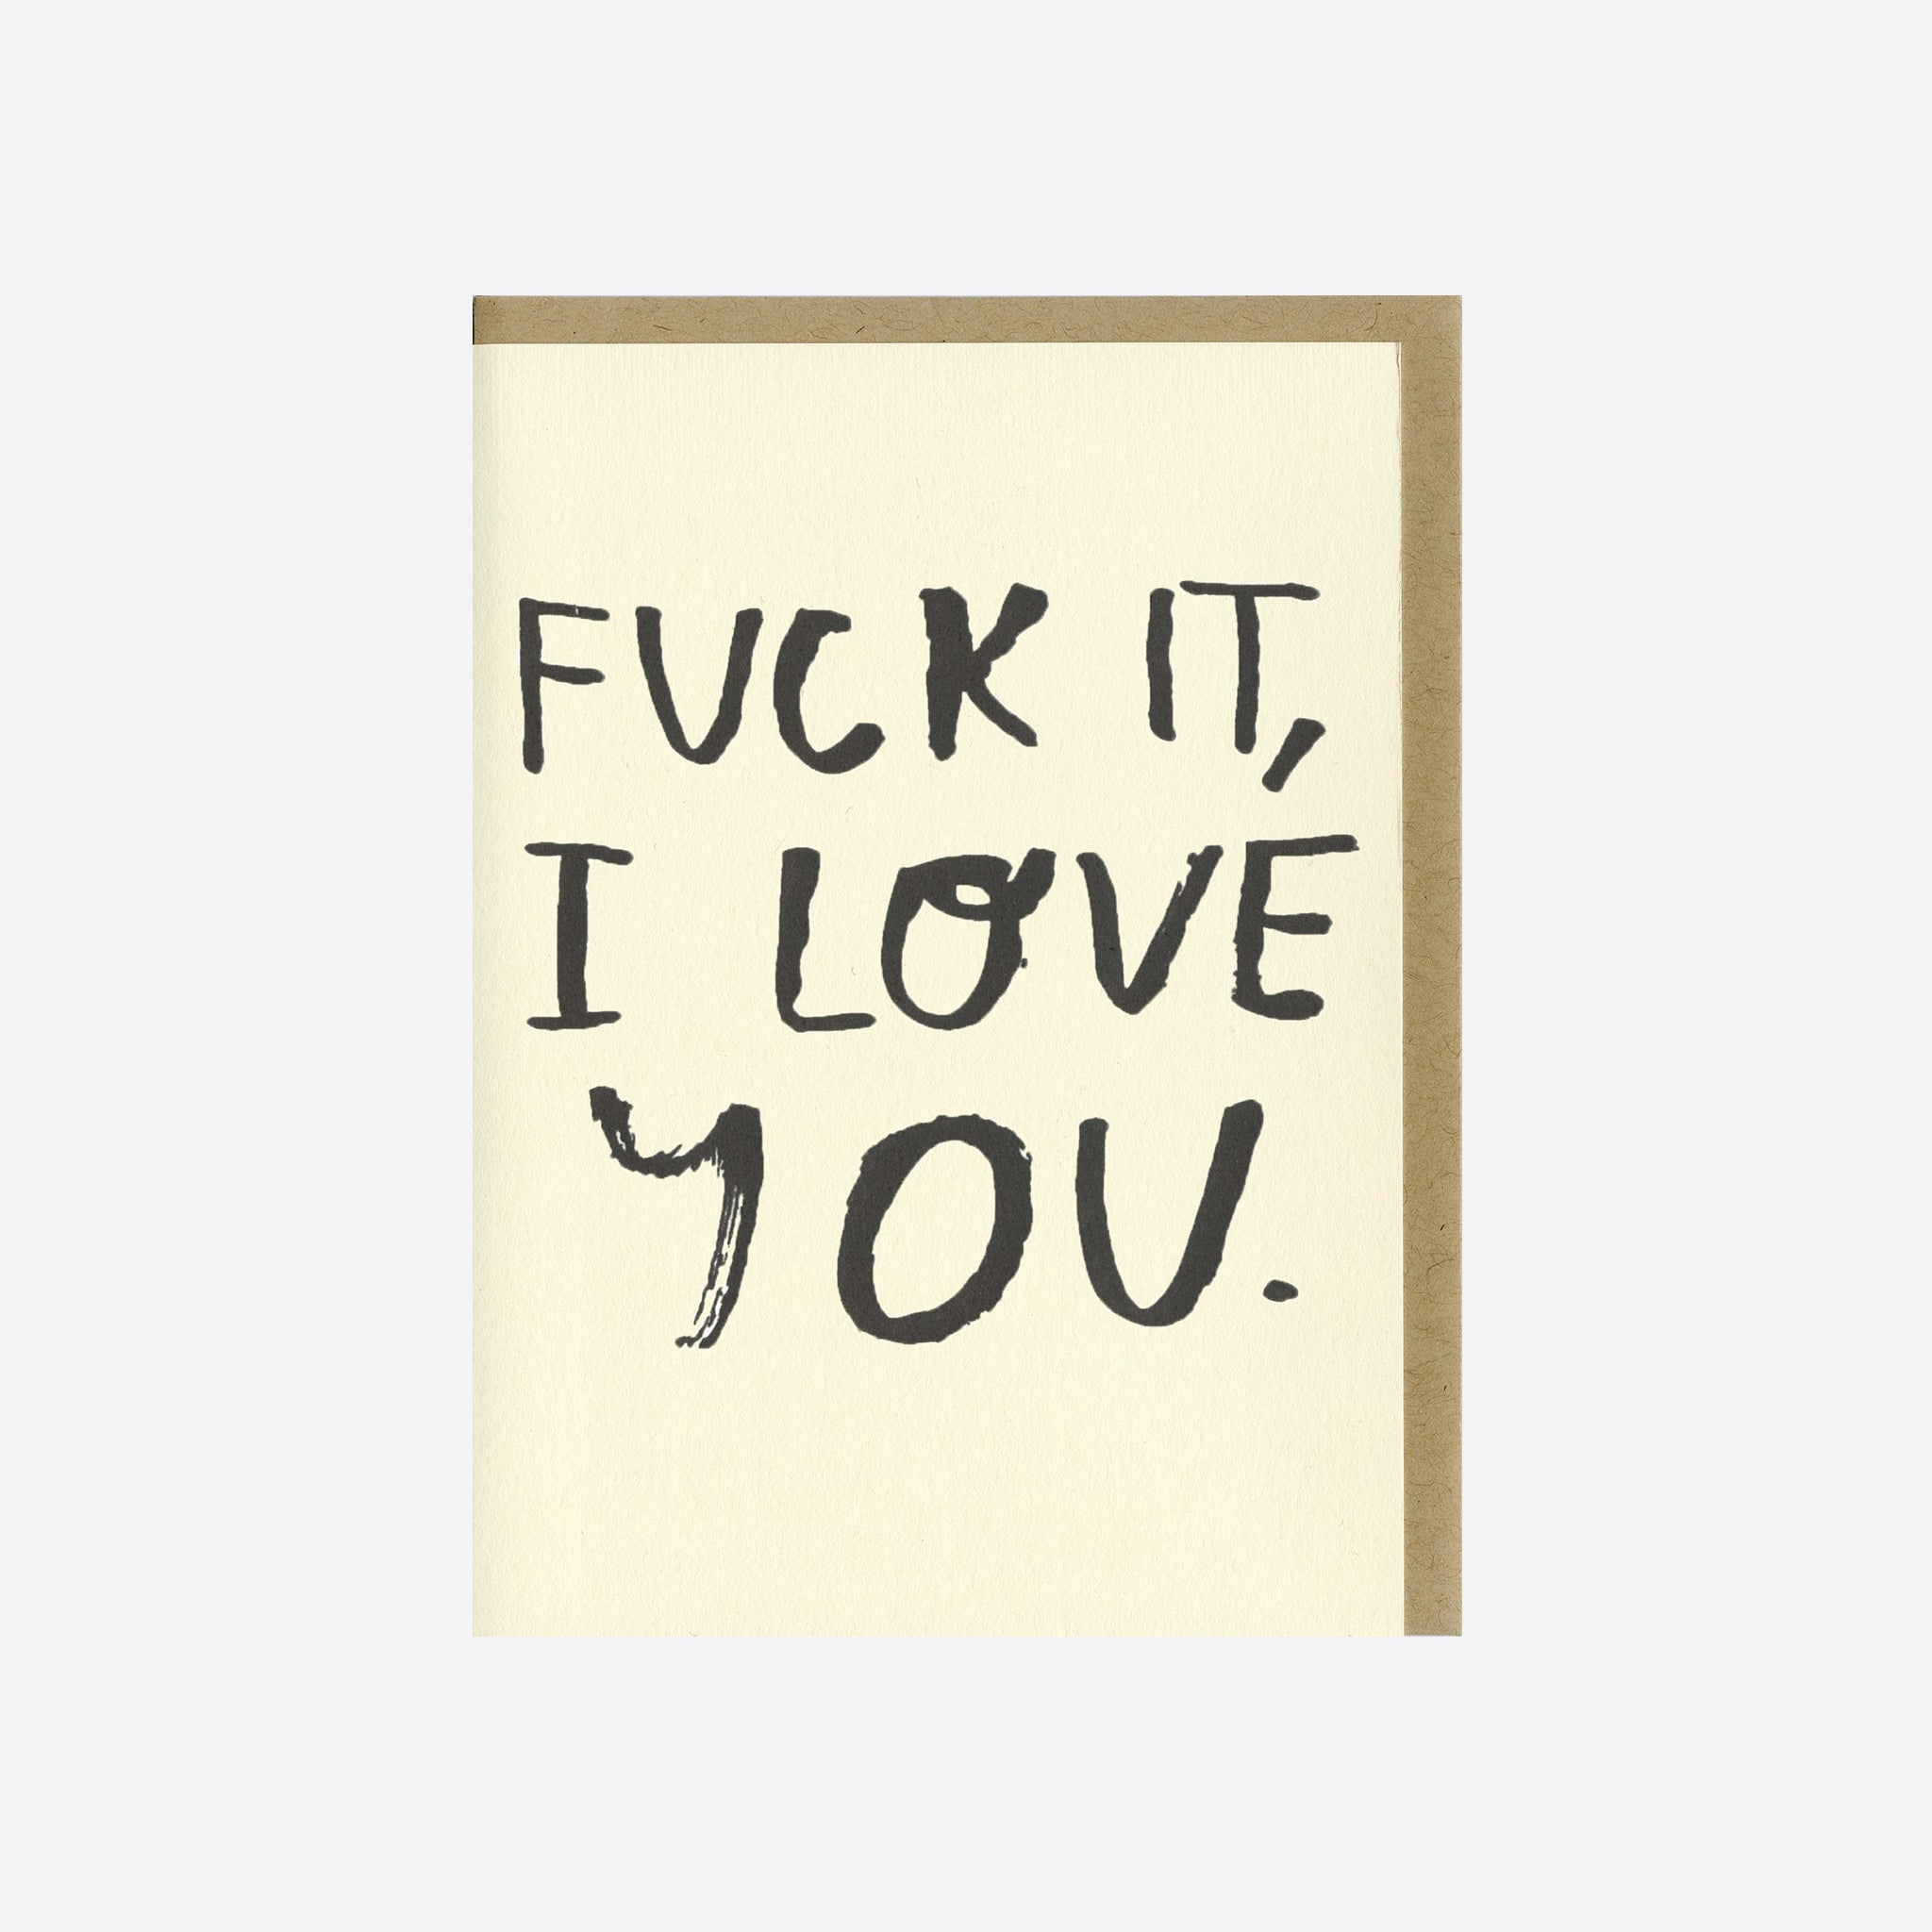 People I've Loved 'Fuck It' Card